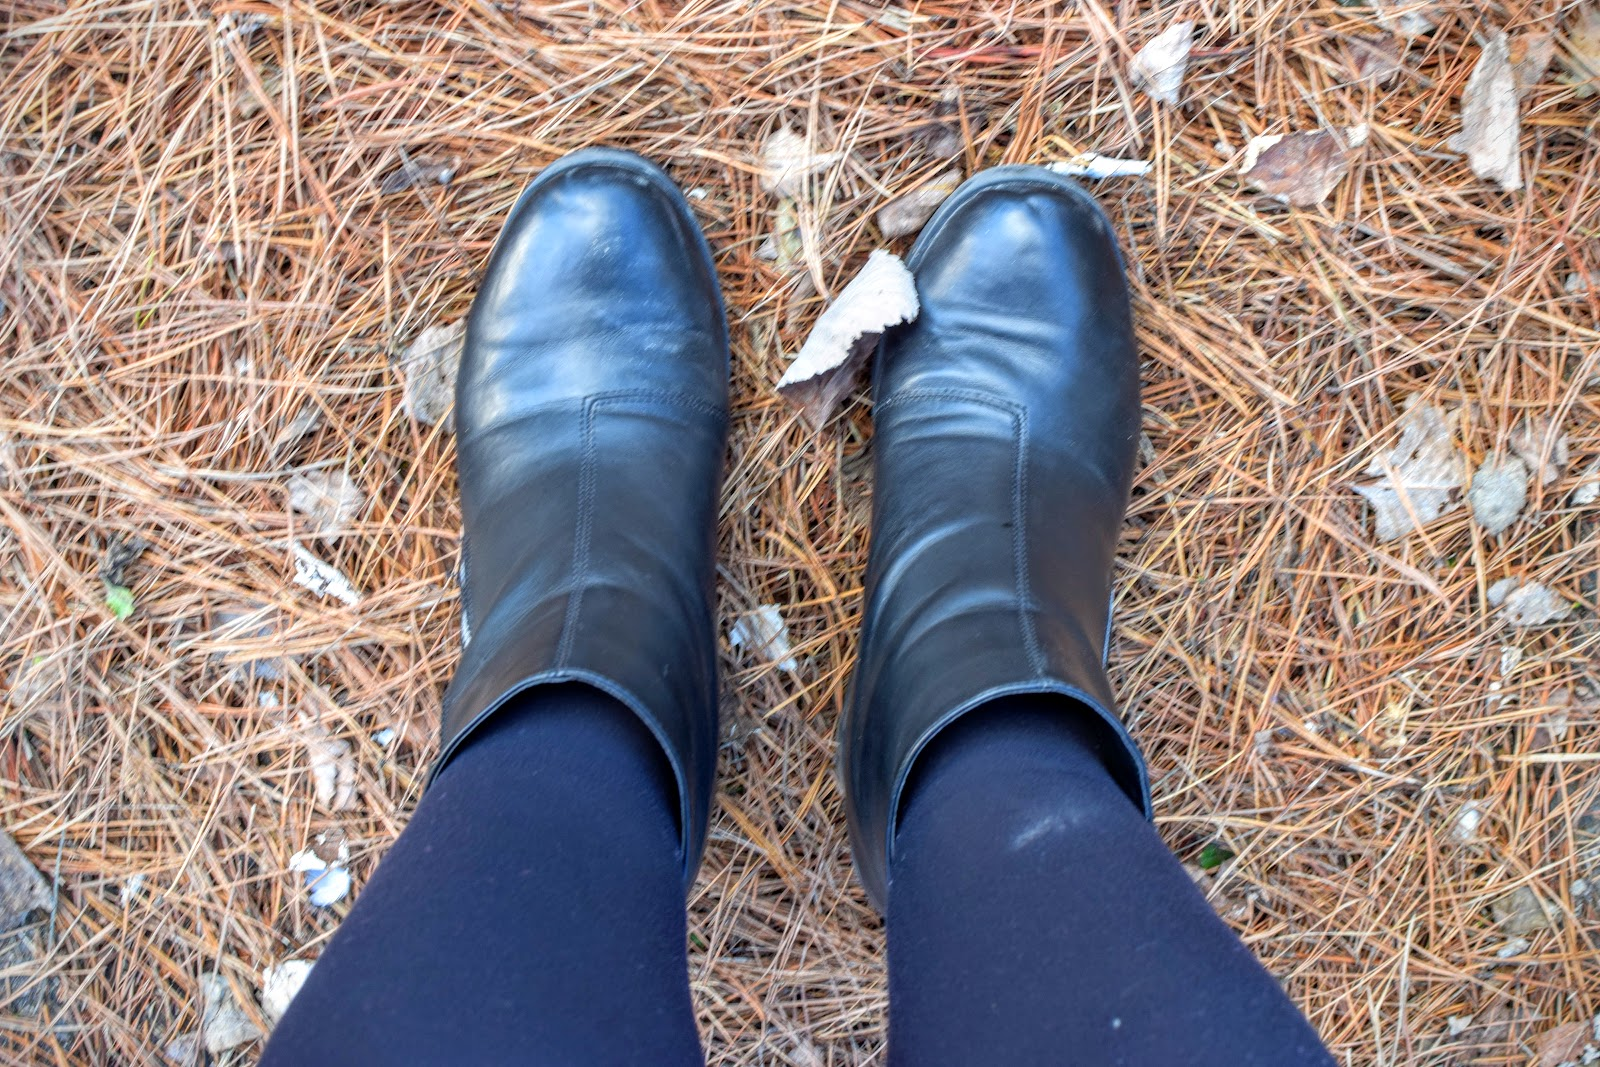 Autumn Fashion, black boots, leaves, autumn leaves, fall fashion, fall, fall leaves,